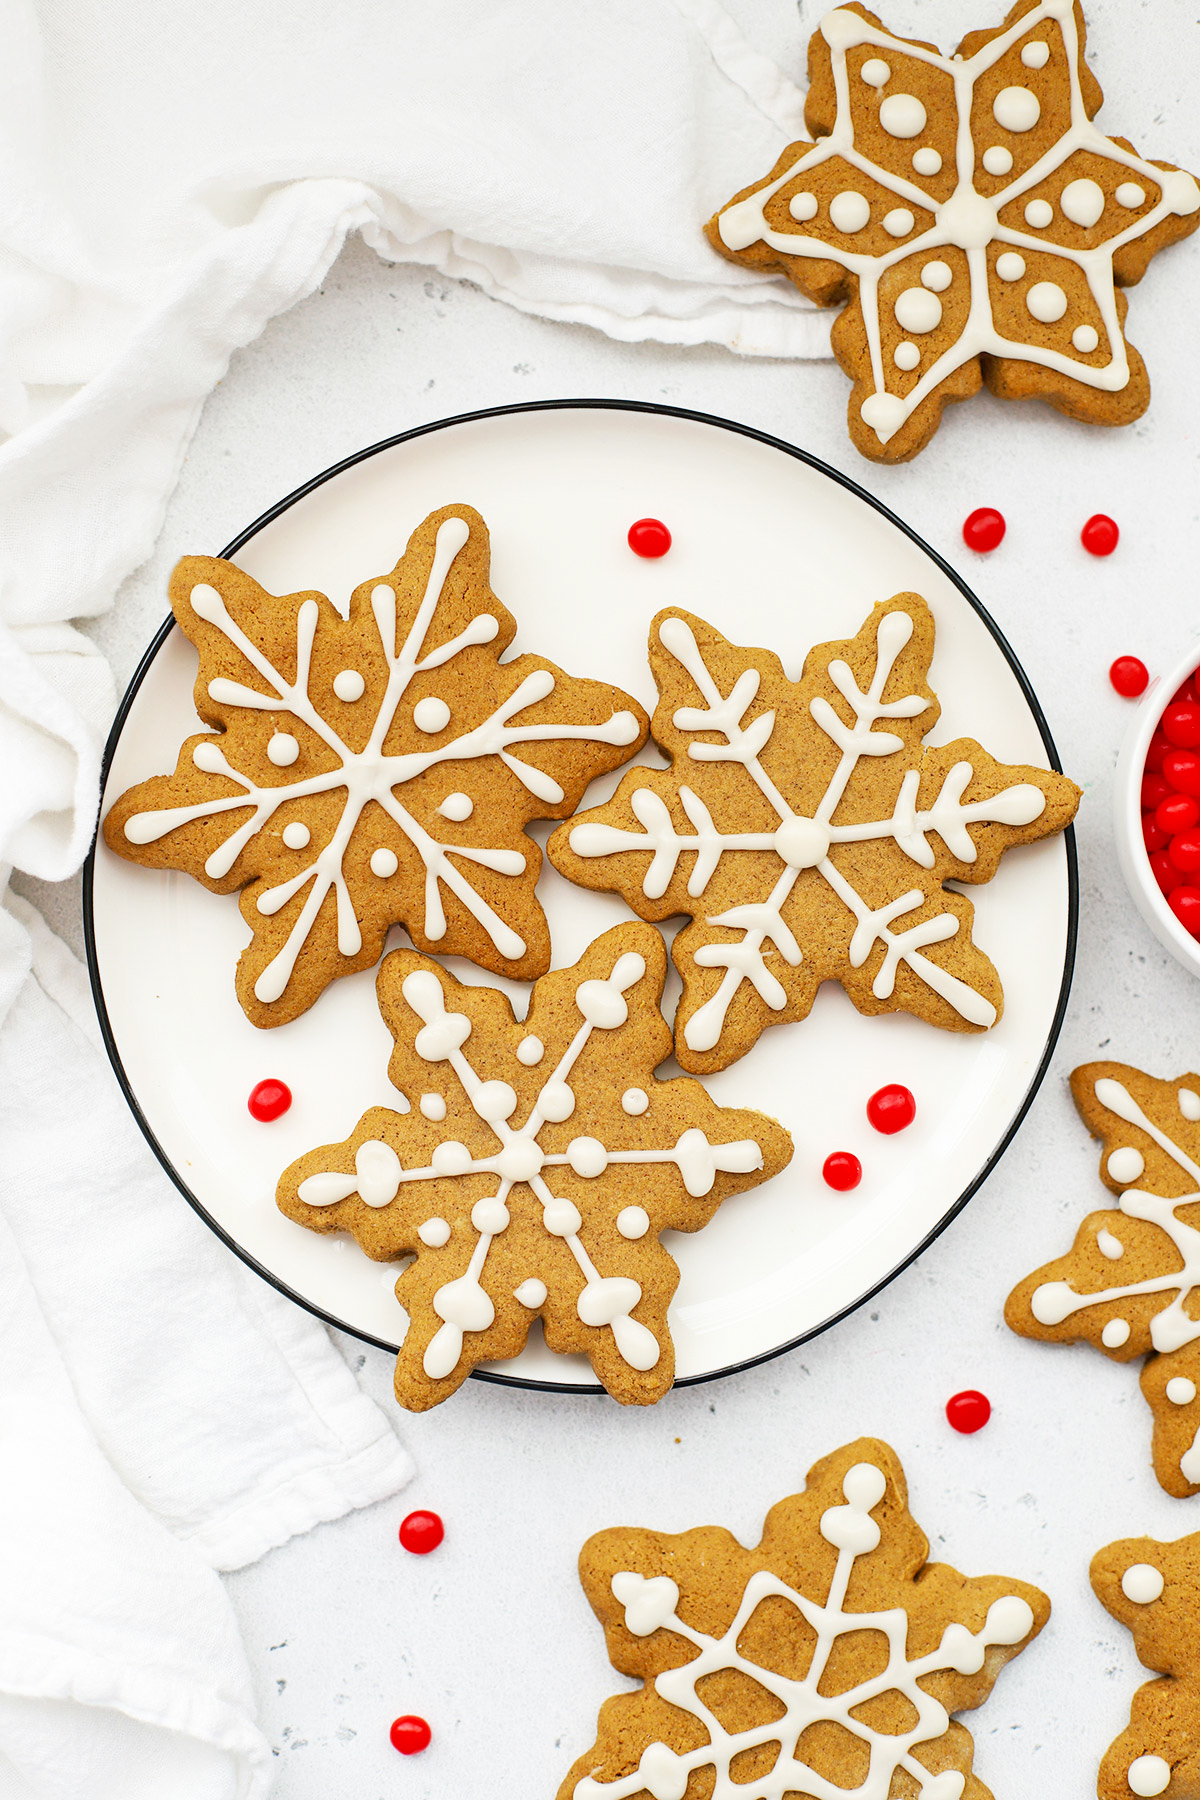 Overhead view of a plate of gluten-free gingerbread cookies decorated like snowflakes on a white background